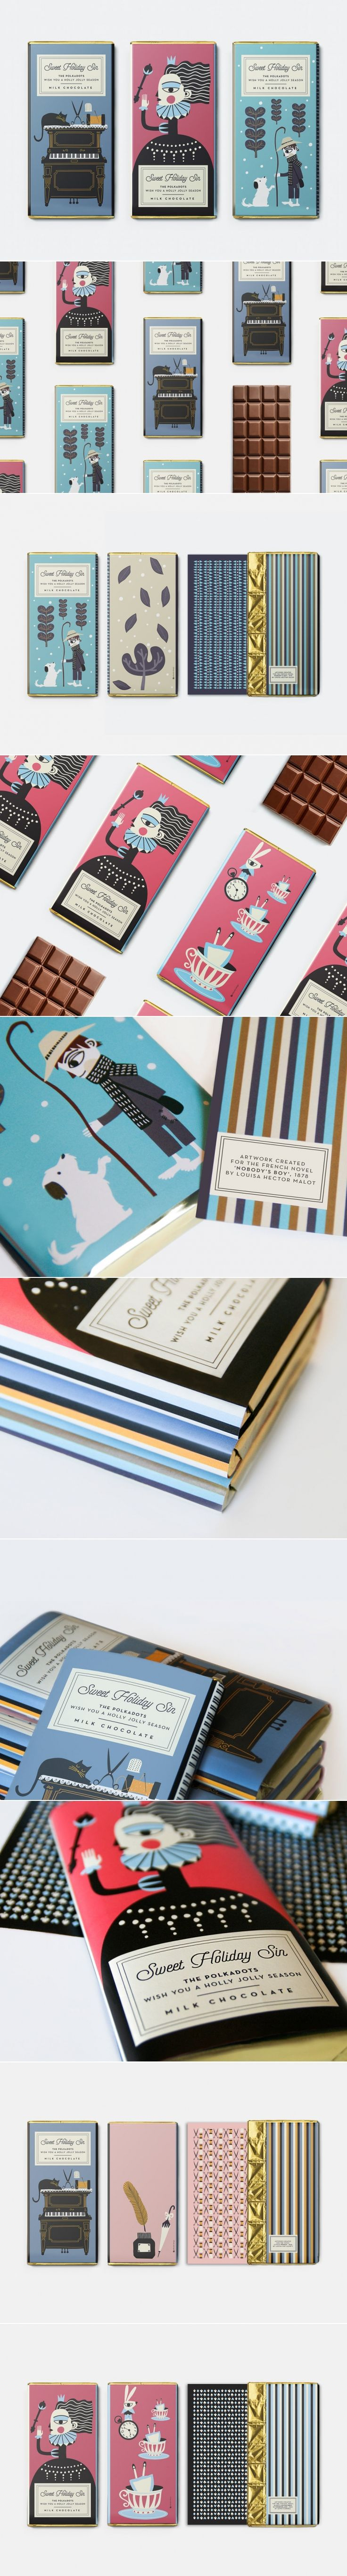 Check Out the Whimsical Illustrations For This Holiday Chocolate Packaging — The Dieline   Packaging & Branding Design & Innovation News